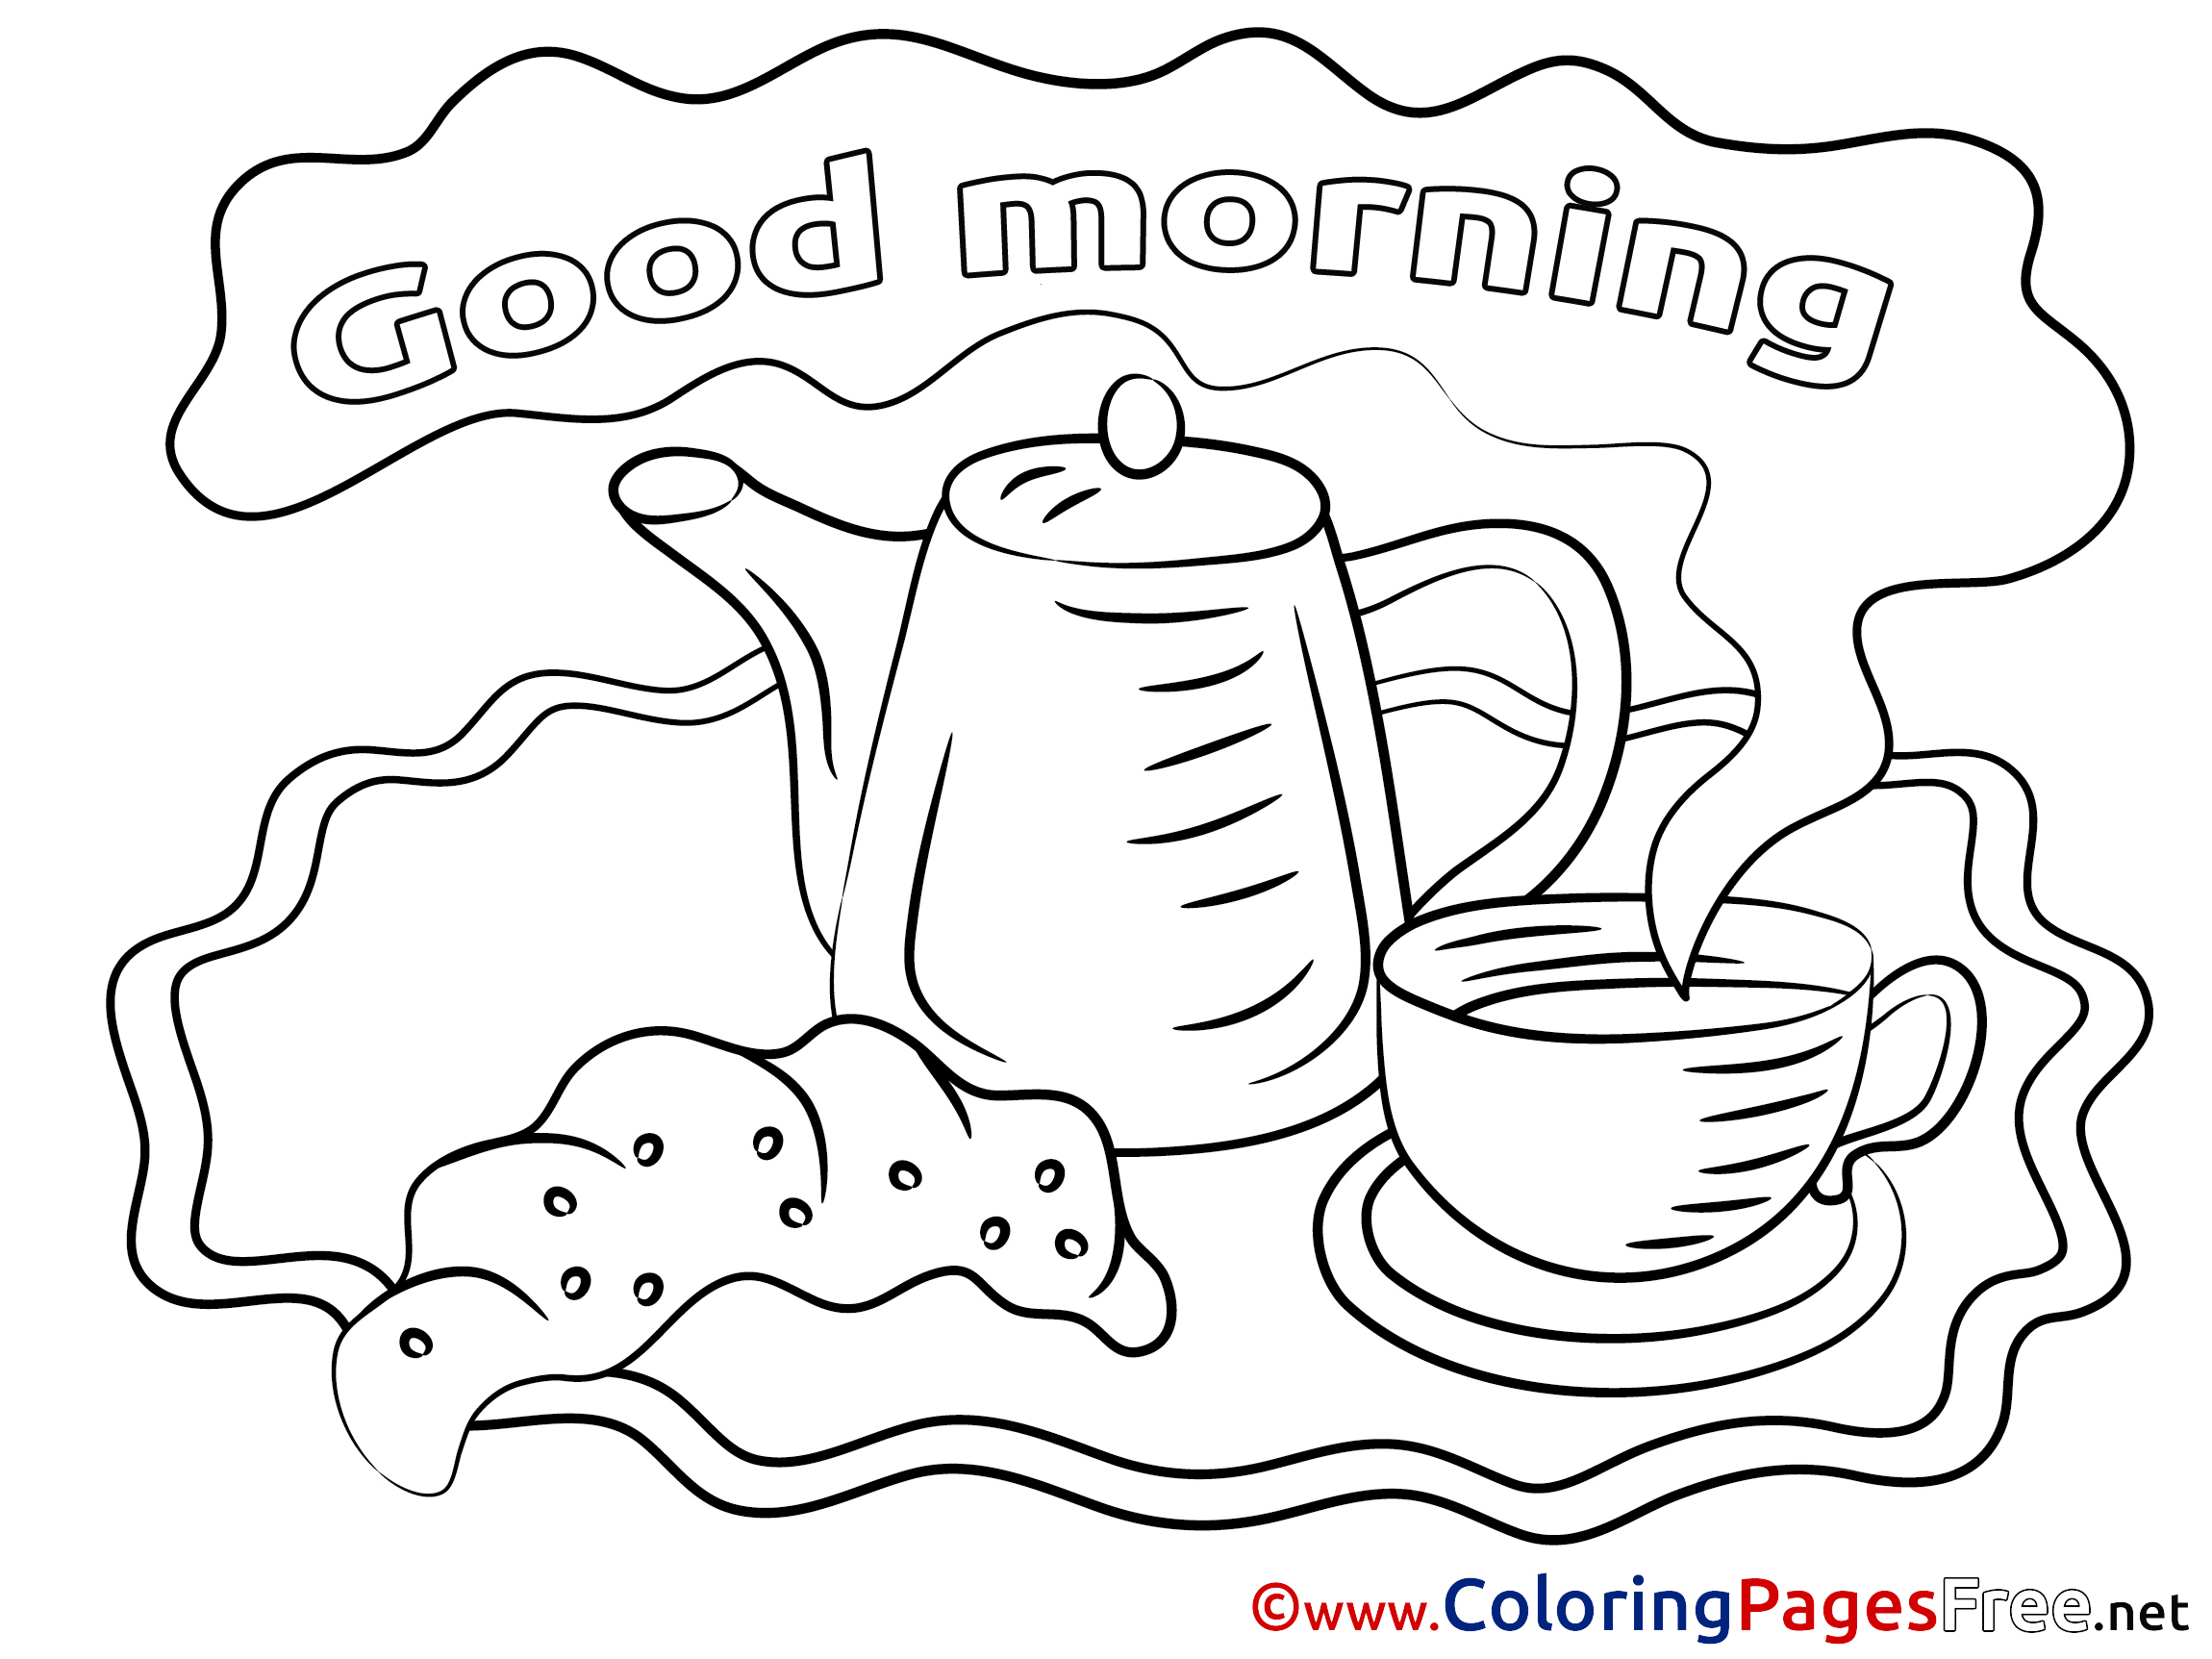 Kettle Coloring Sheets Good Morning Free